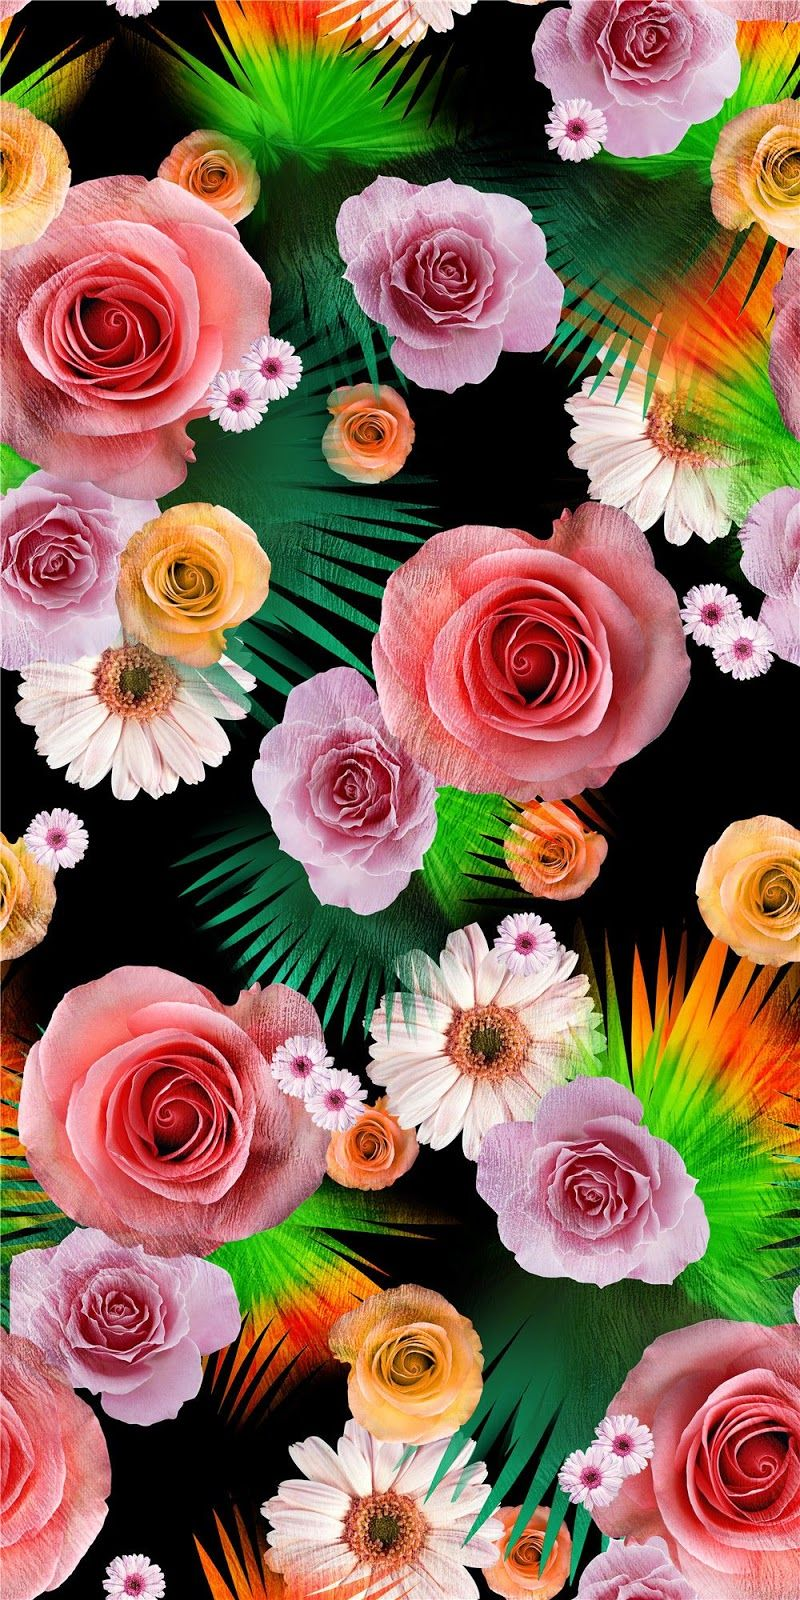 Free clipart,pattern and backgrounds,Art images,Textile digital ... for Flower Pattern Animated  29jwn